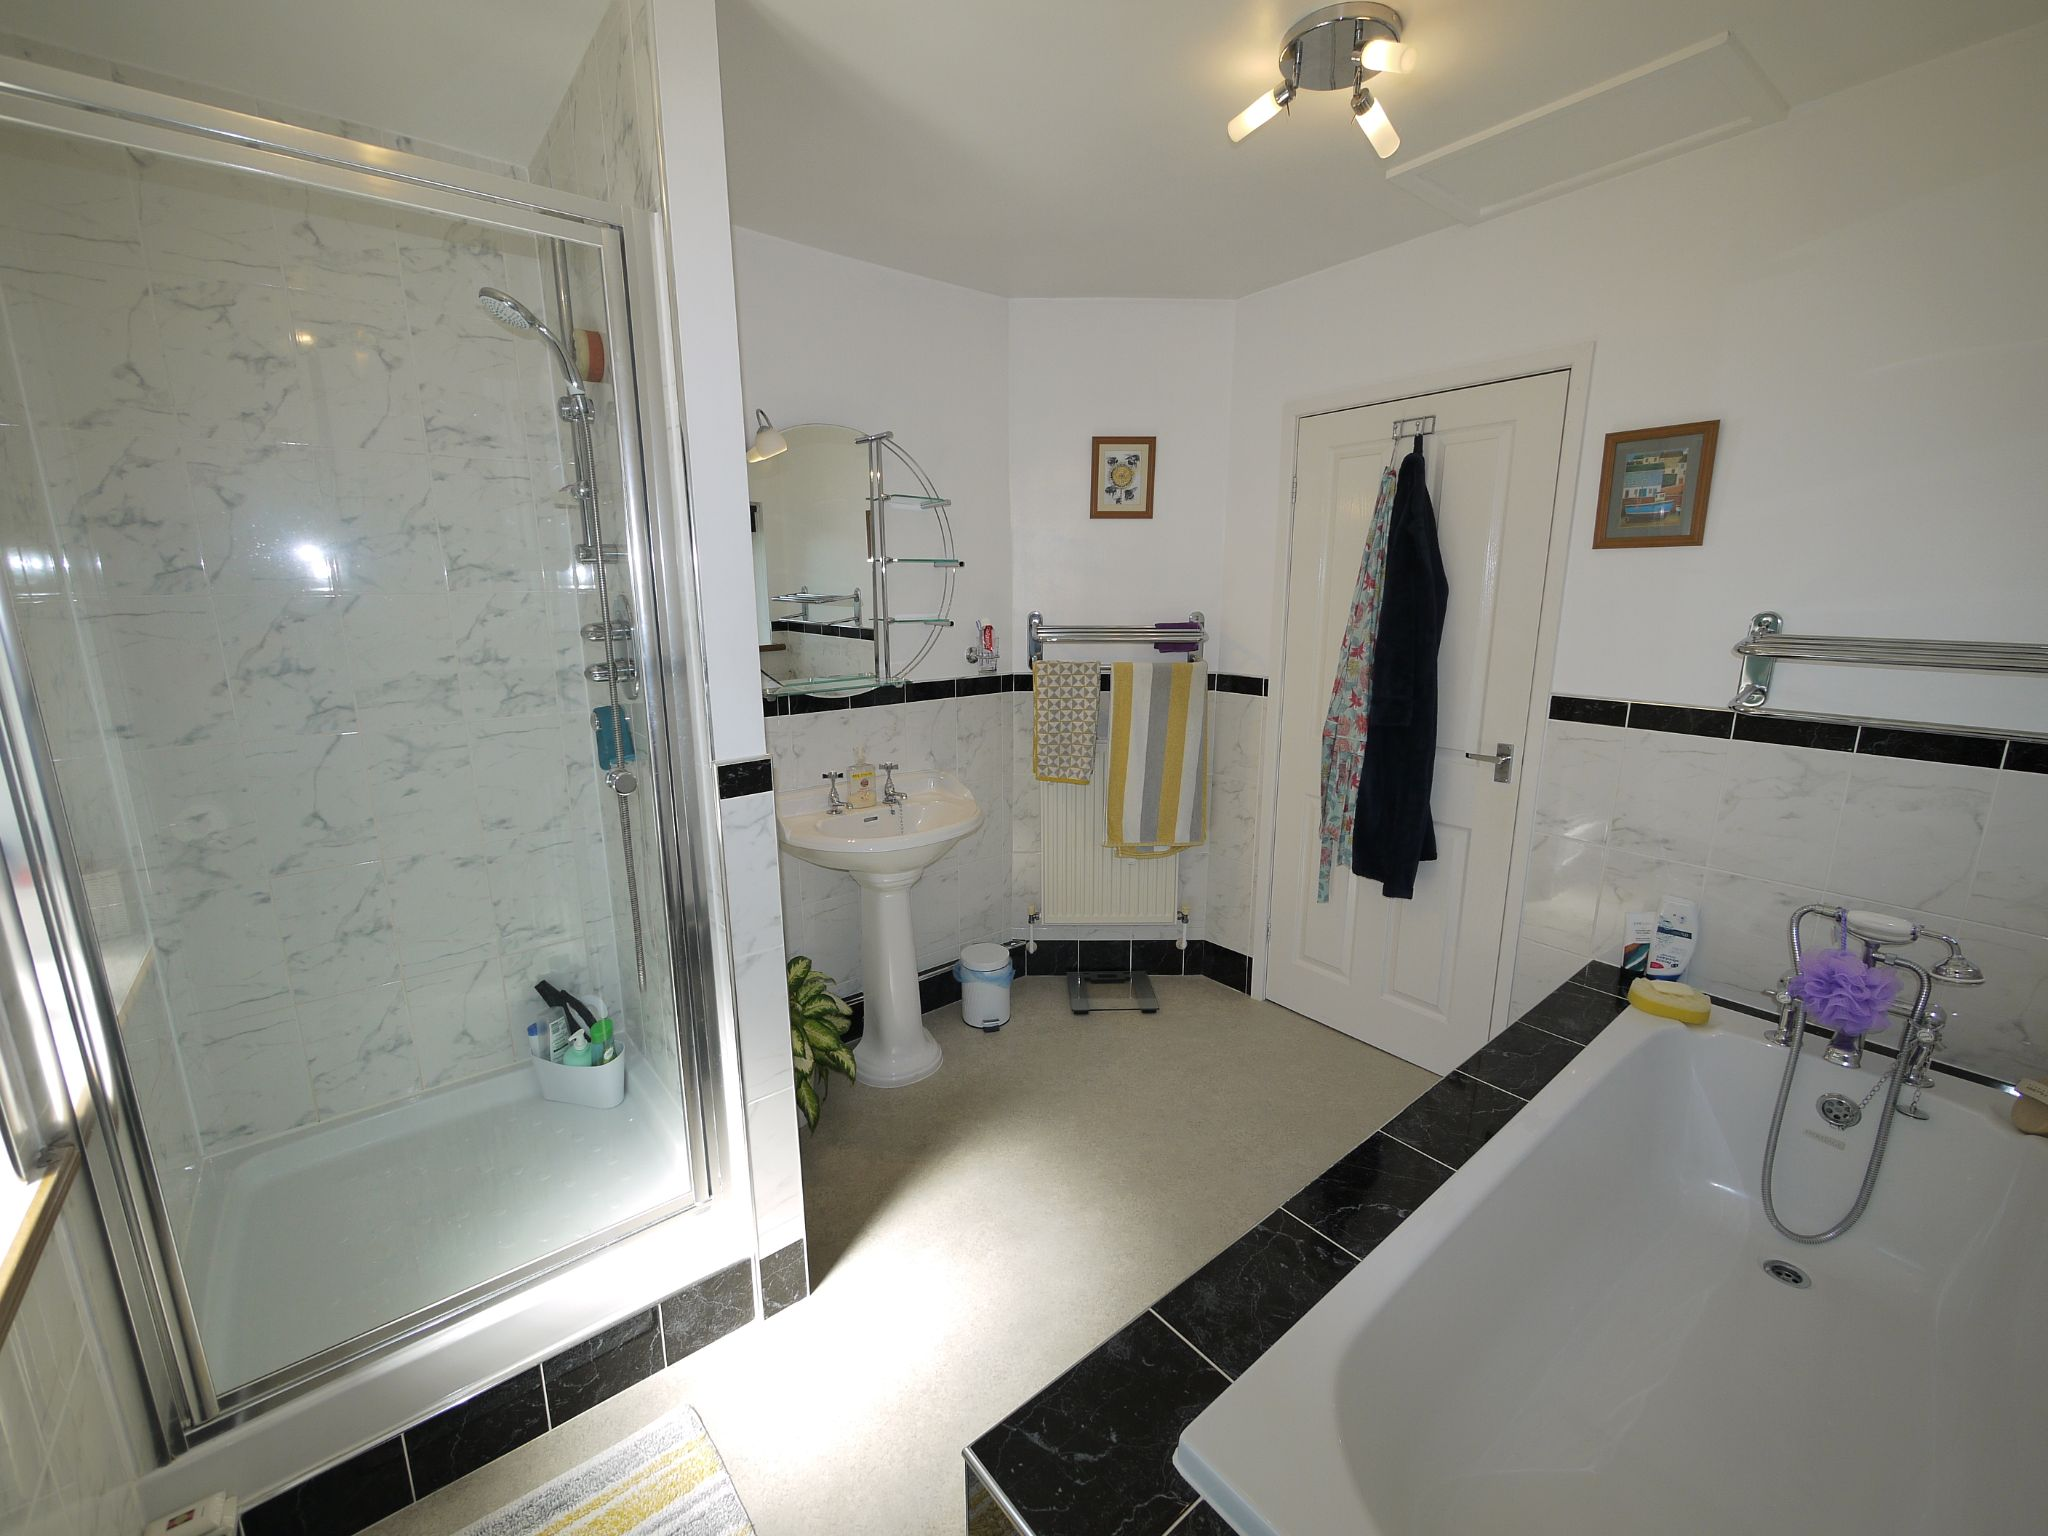 5 bedroom detached house SSTC in Brighouse - Bathroom.